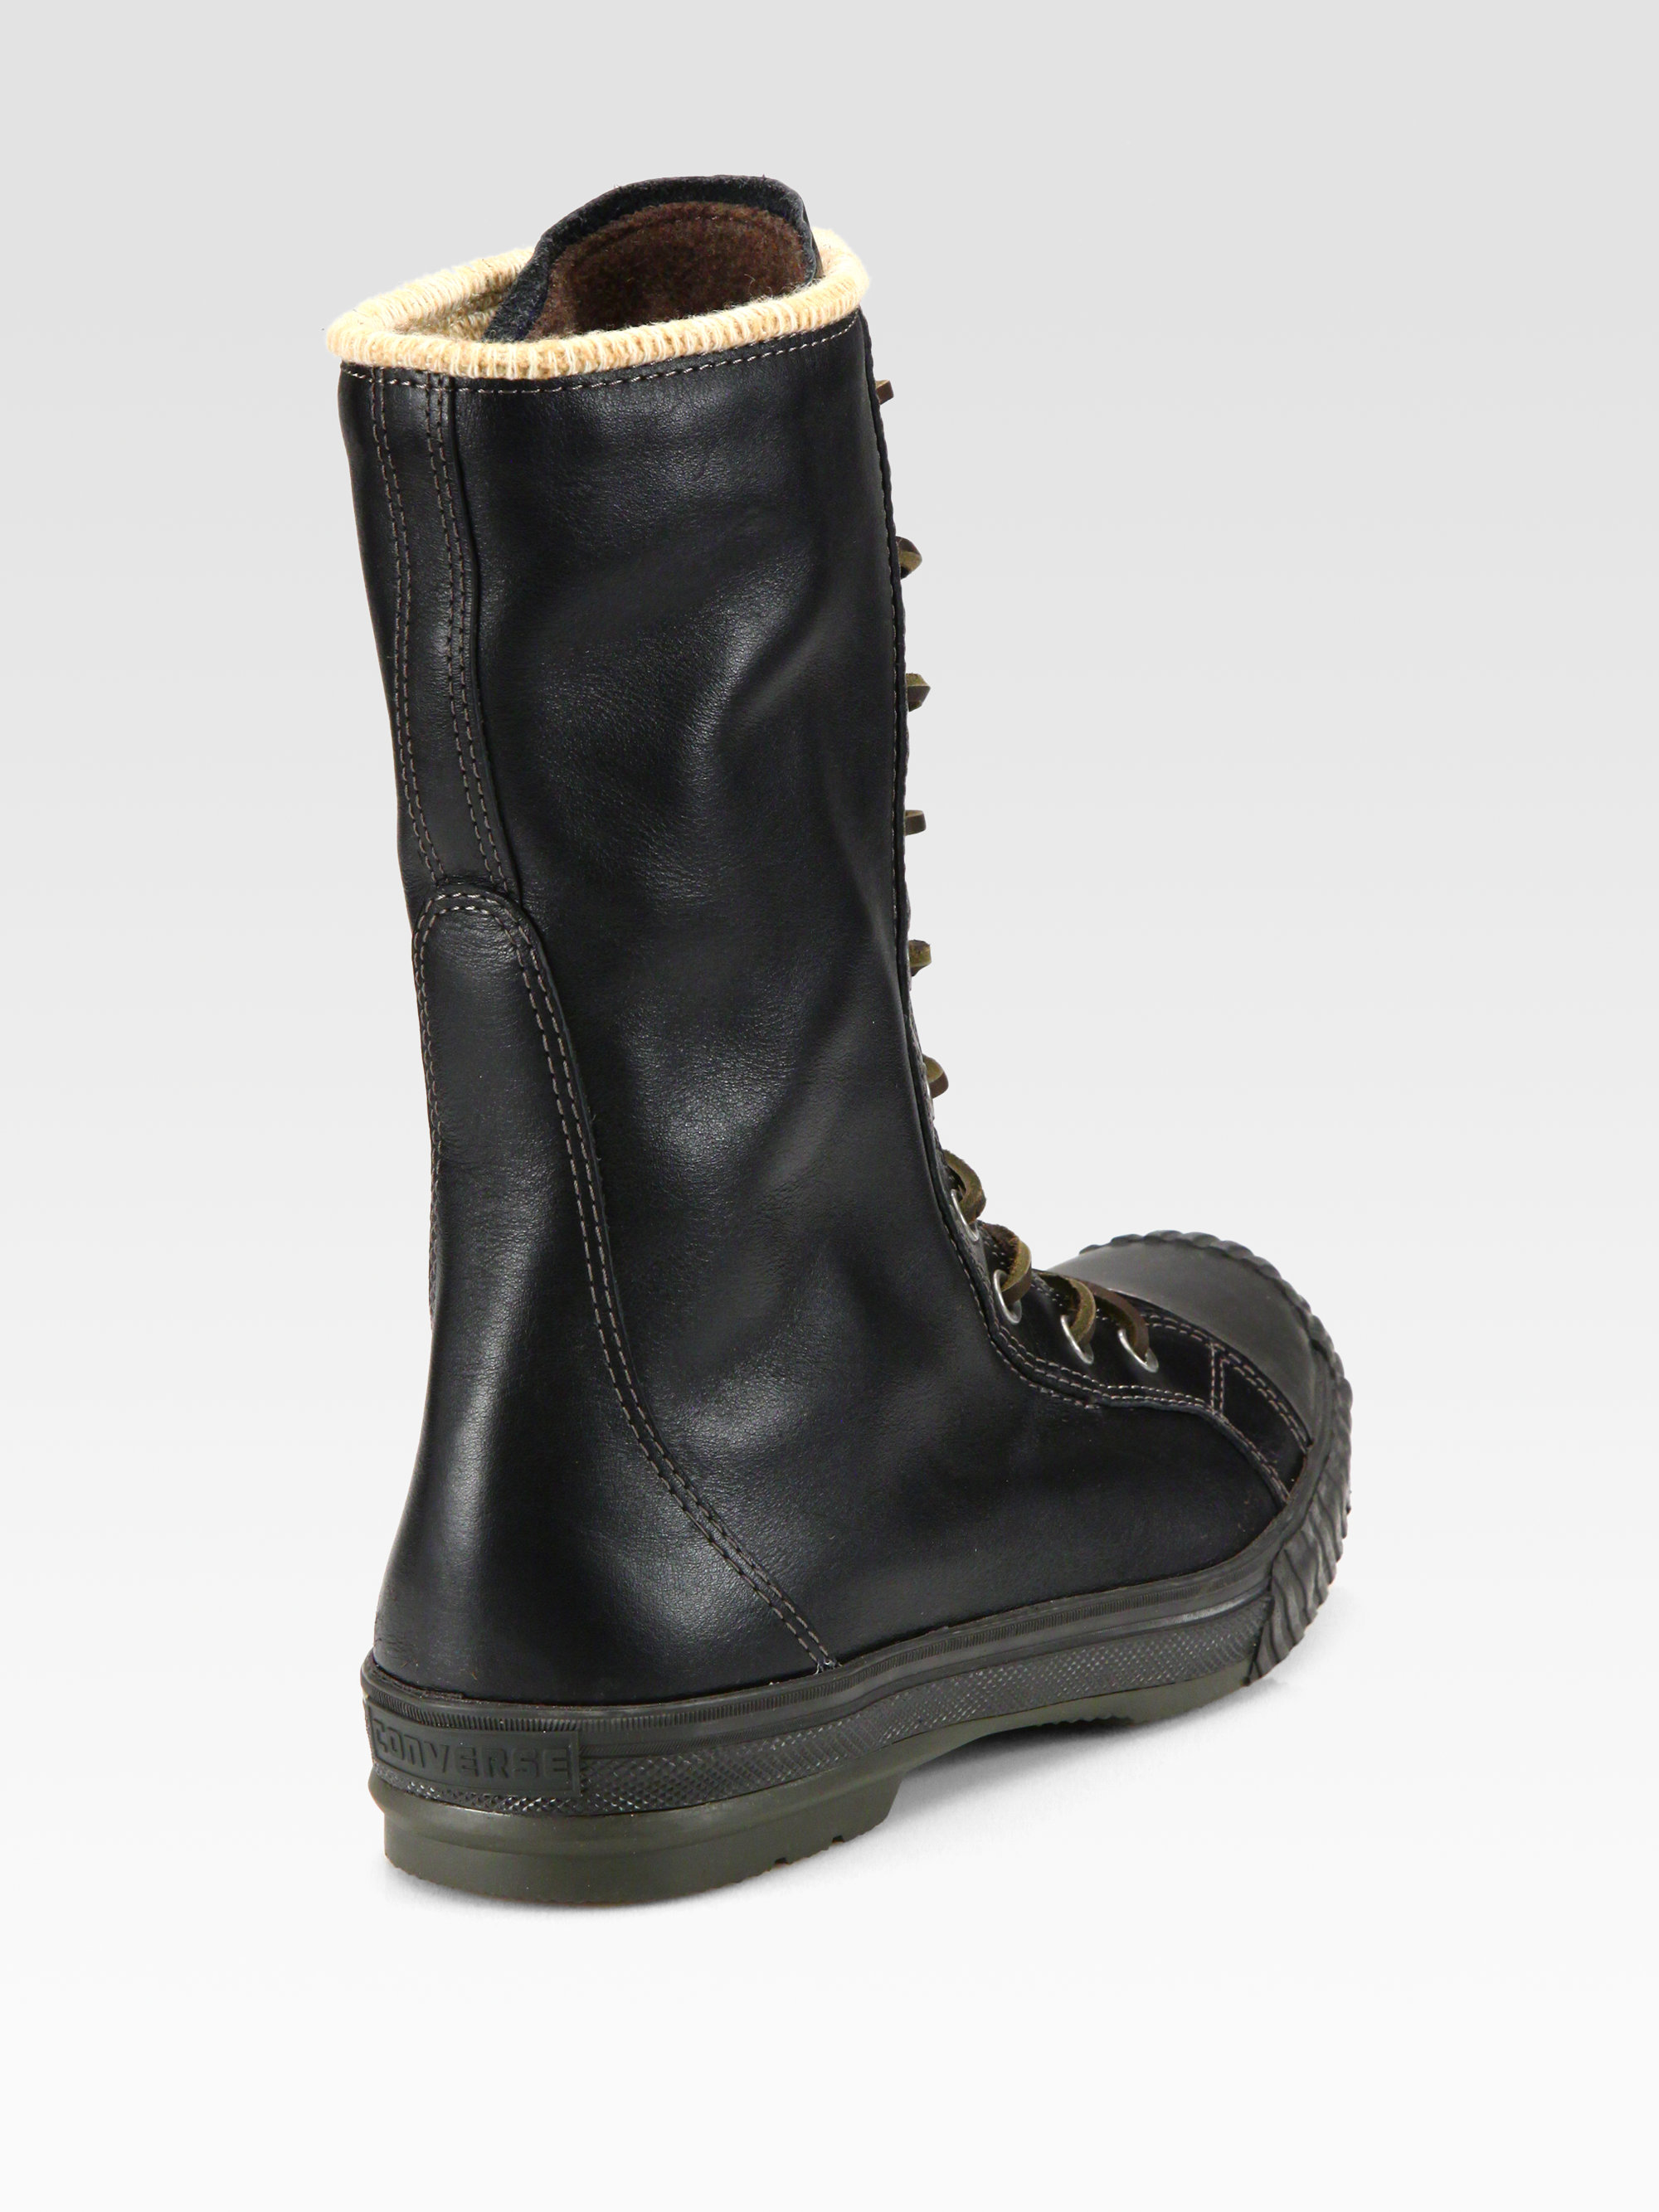 Lyst Converse Chuck Taylor All Star Bosey Tall Boots In